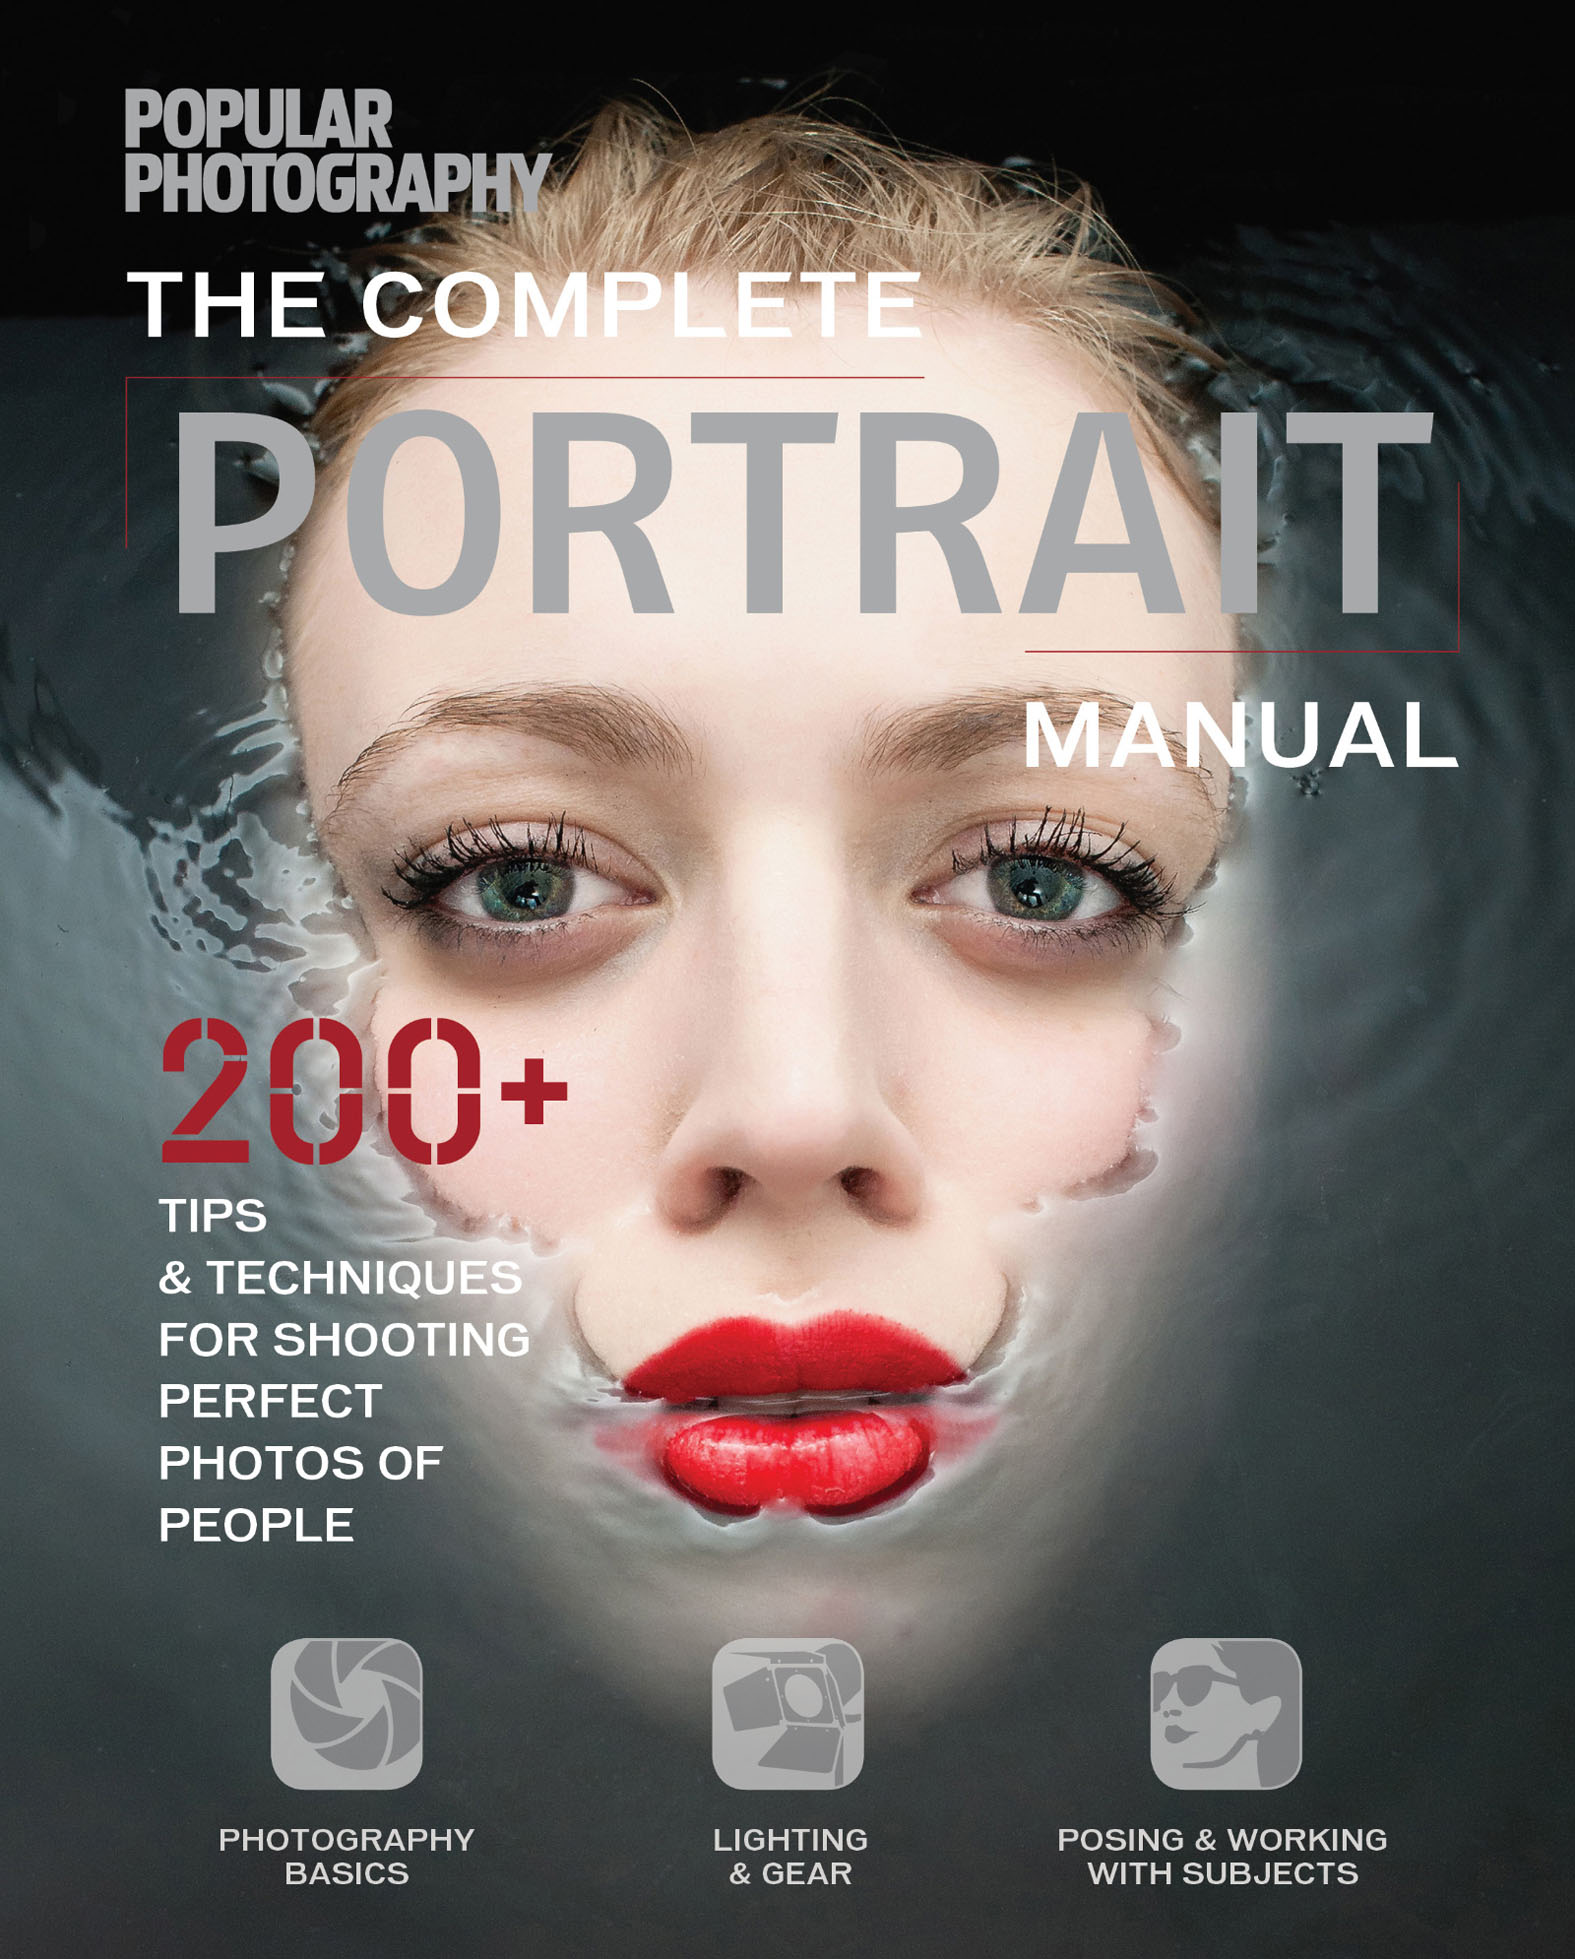 The Complete Portrait Manual